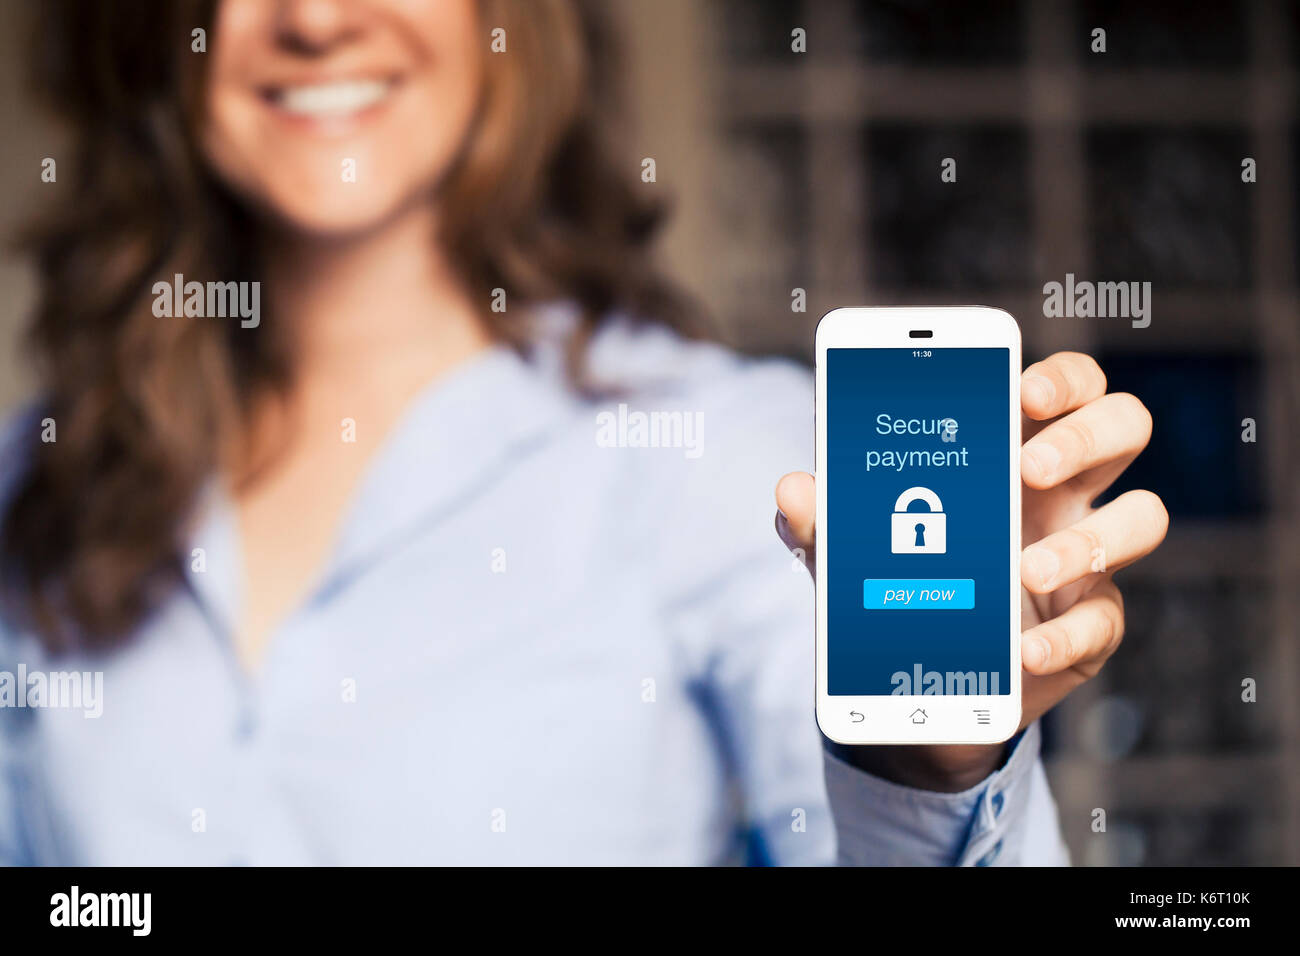 Secure payment notification in a mobile phone screen. Woman using a smartphone with online banking app in the screen. - Stock Image